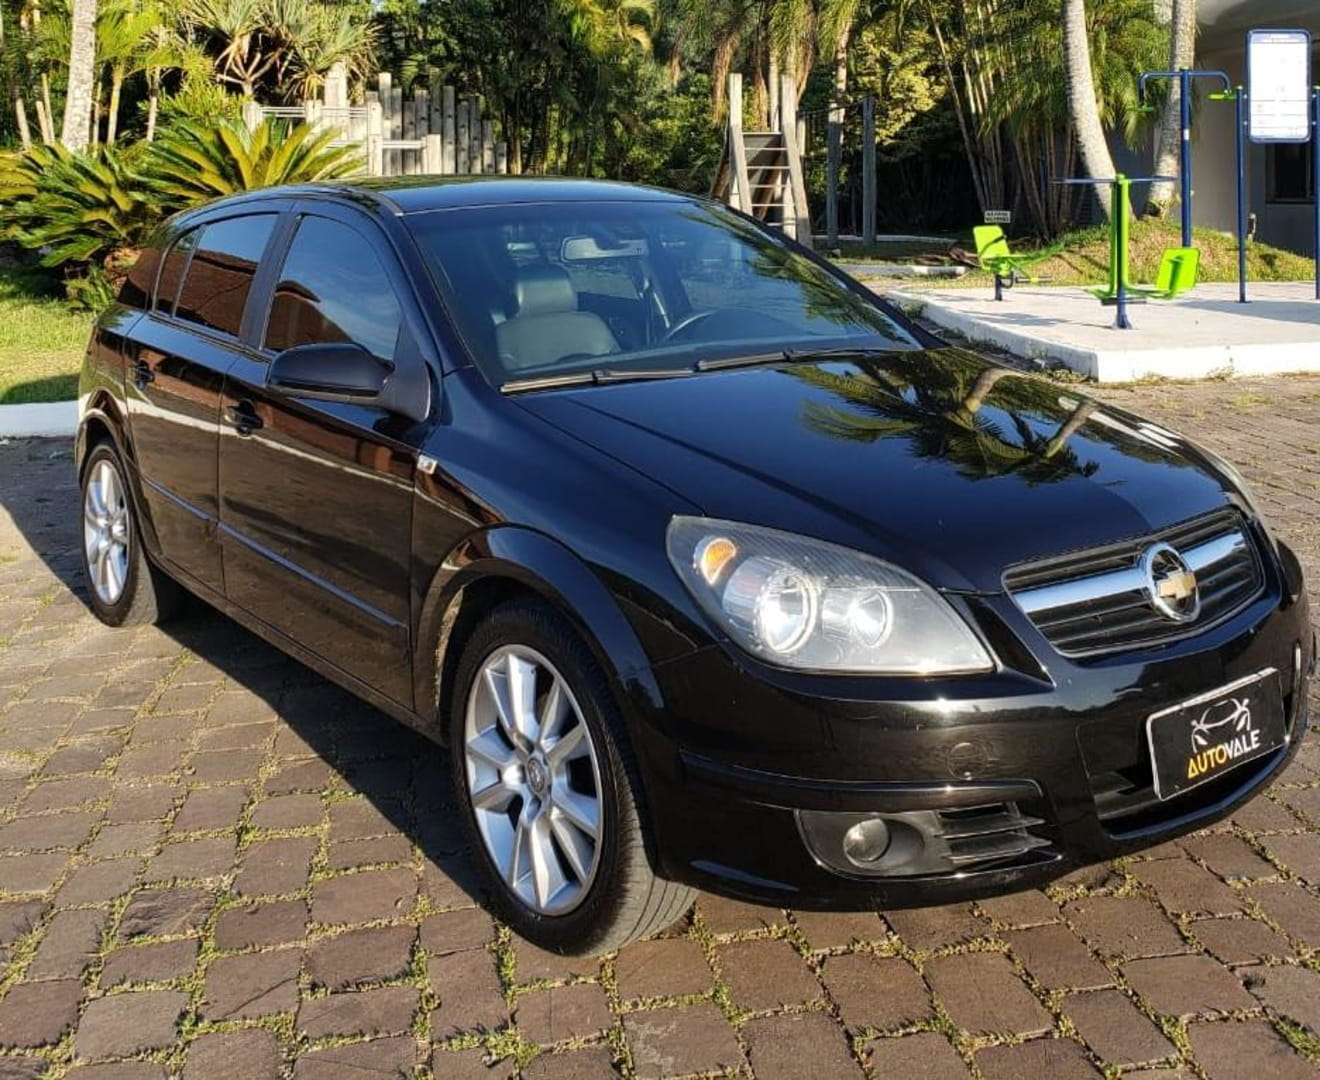 vectra hatch gtx 2.0 8v 4p 2008 vale real